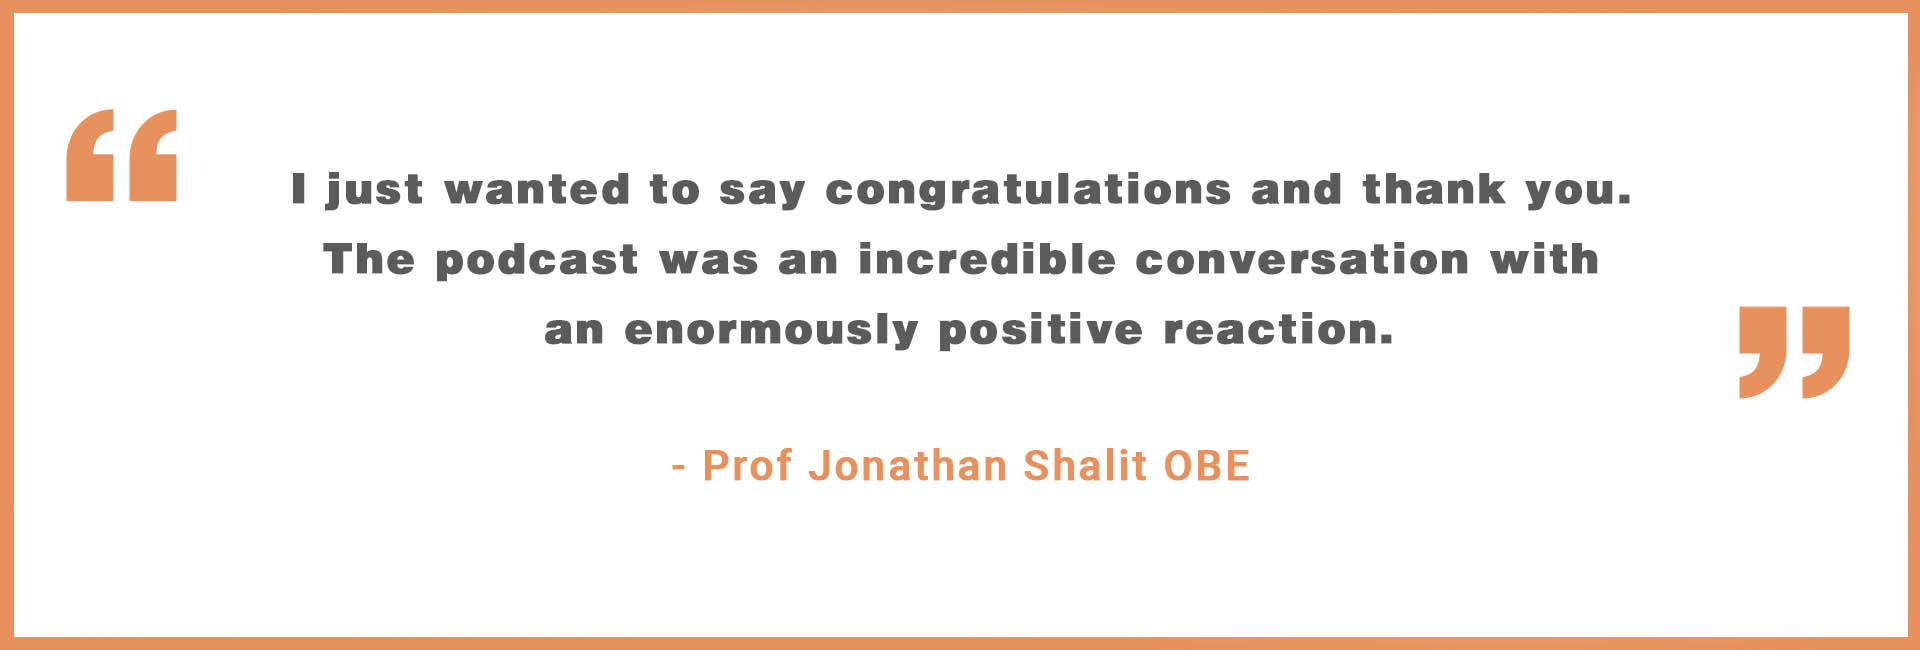 Podcast Quote Prof Jonathan Shalit Events OBE